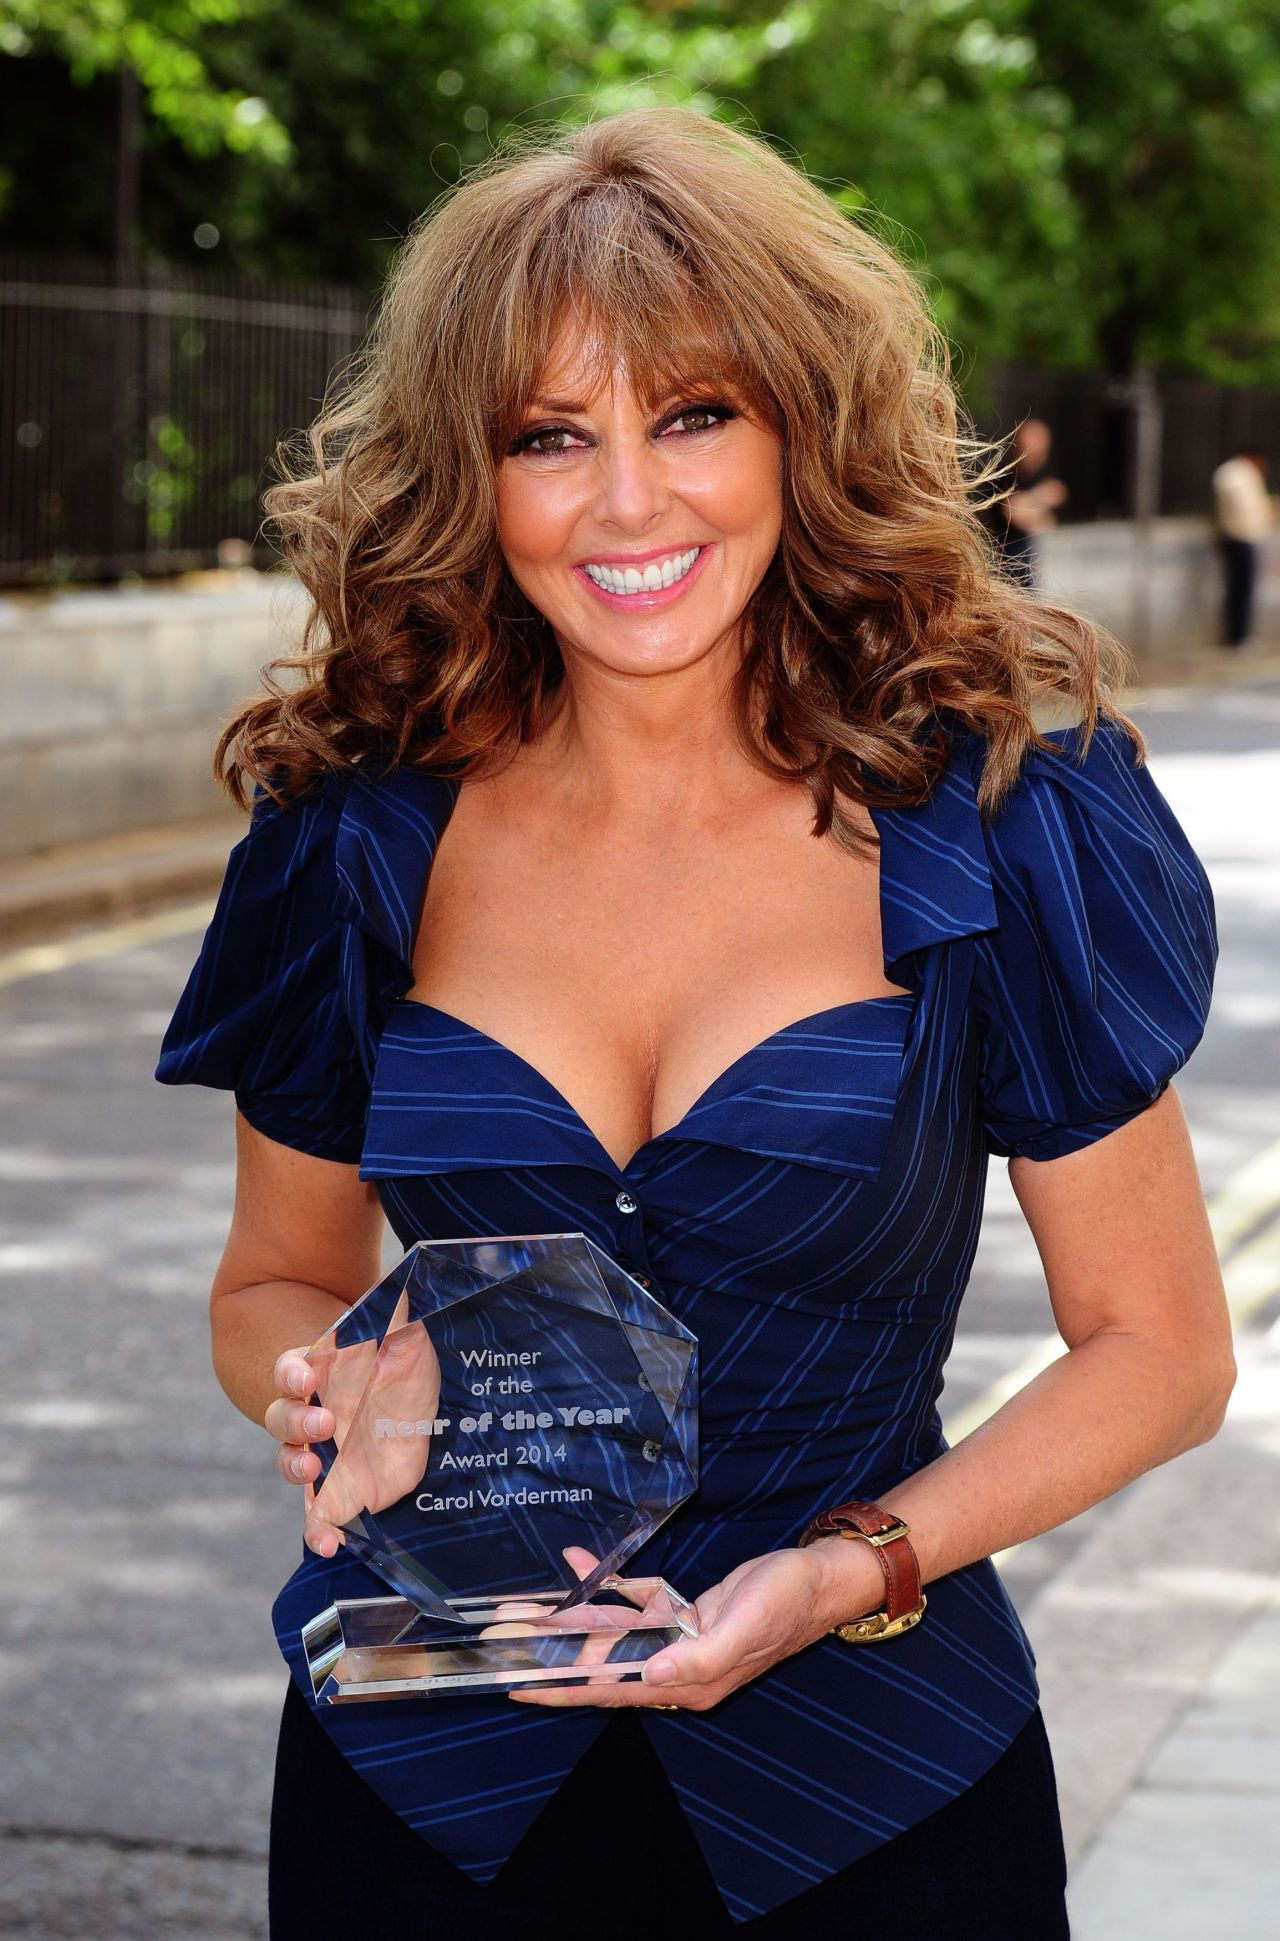 The Year S Of Living Non: Carol Vorderman Posing For The 2014 Rear Of The Year July 2014